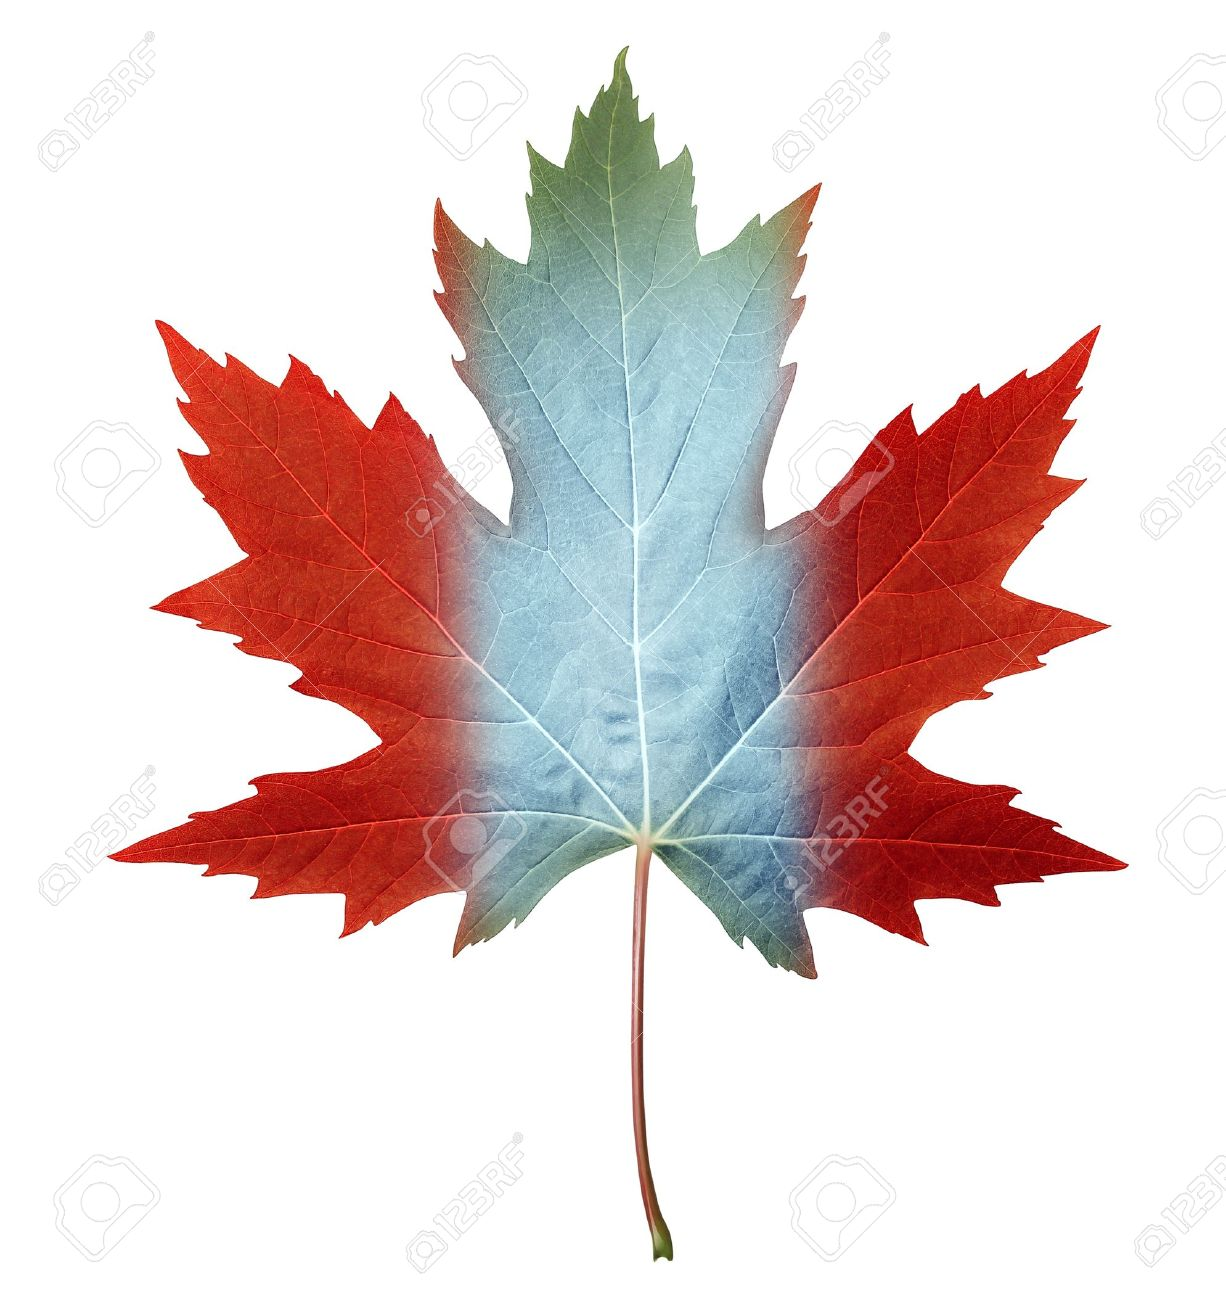 canada maple leaf with the canadian flag colors painted on the